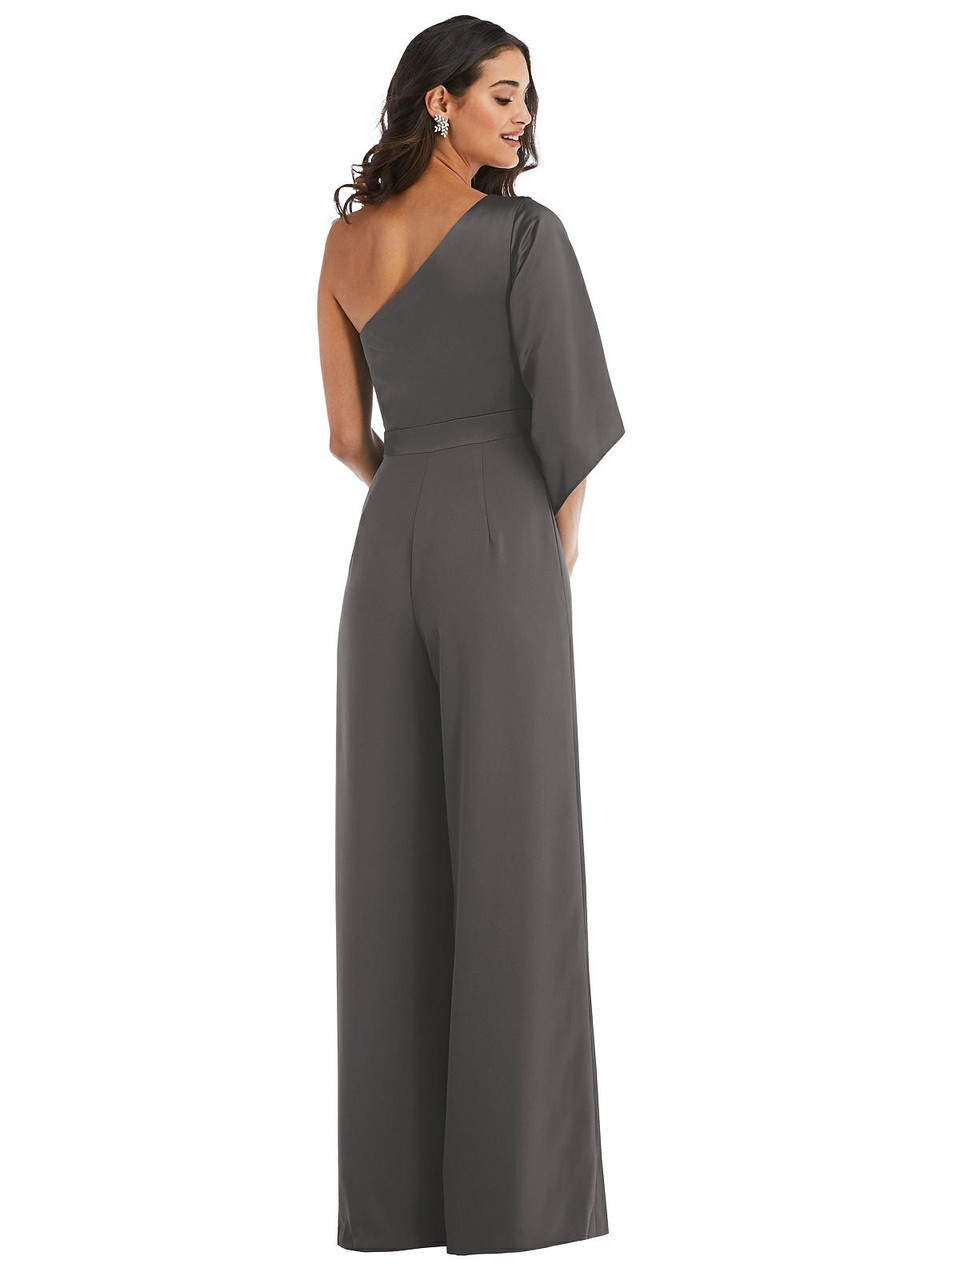 After Six Bridesmaid Dress Style 6839 - Crepe